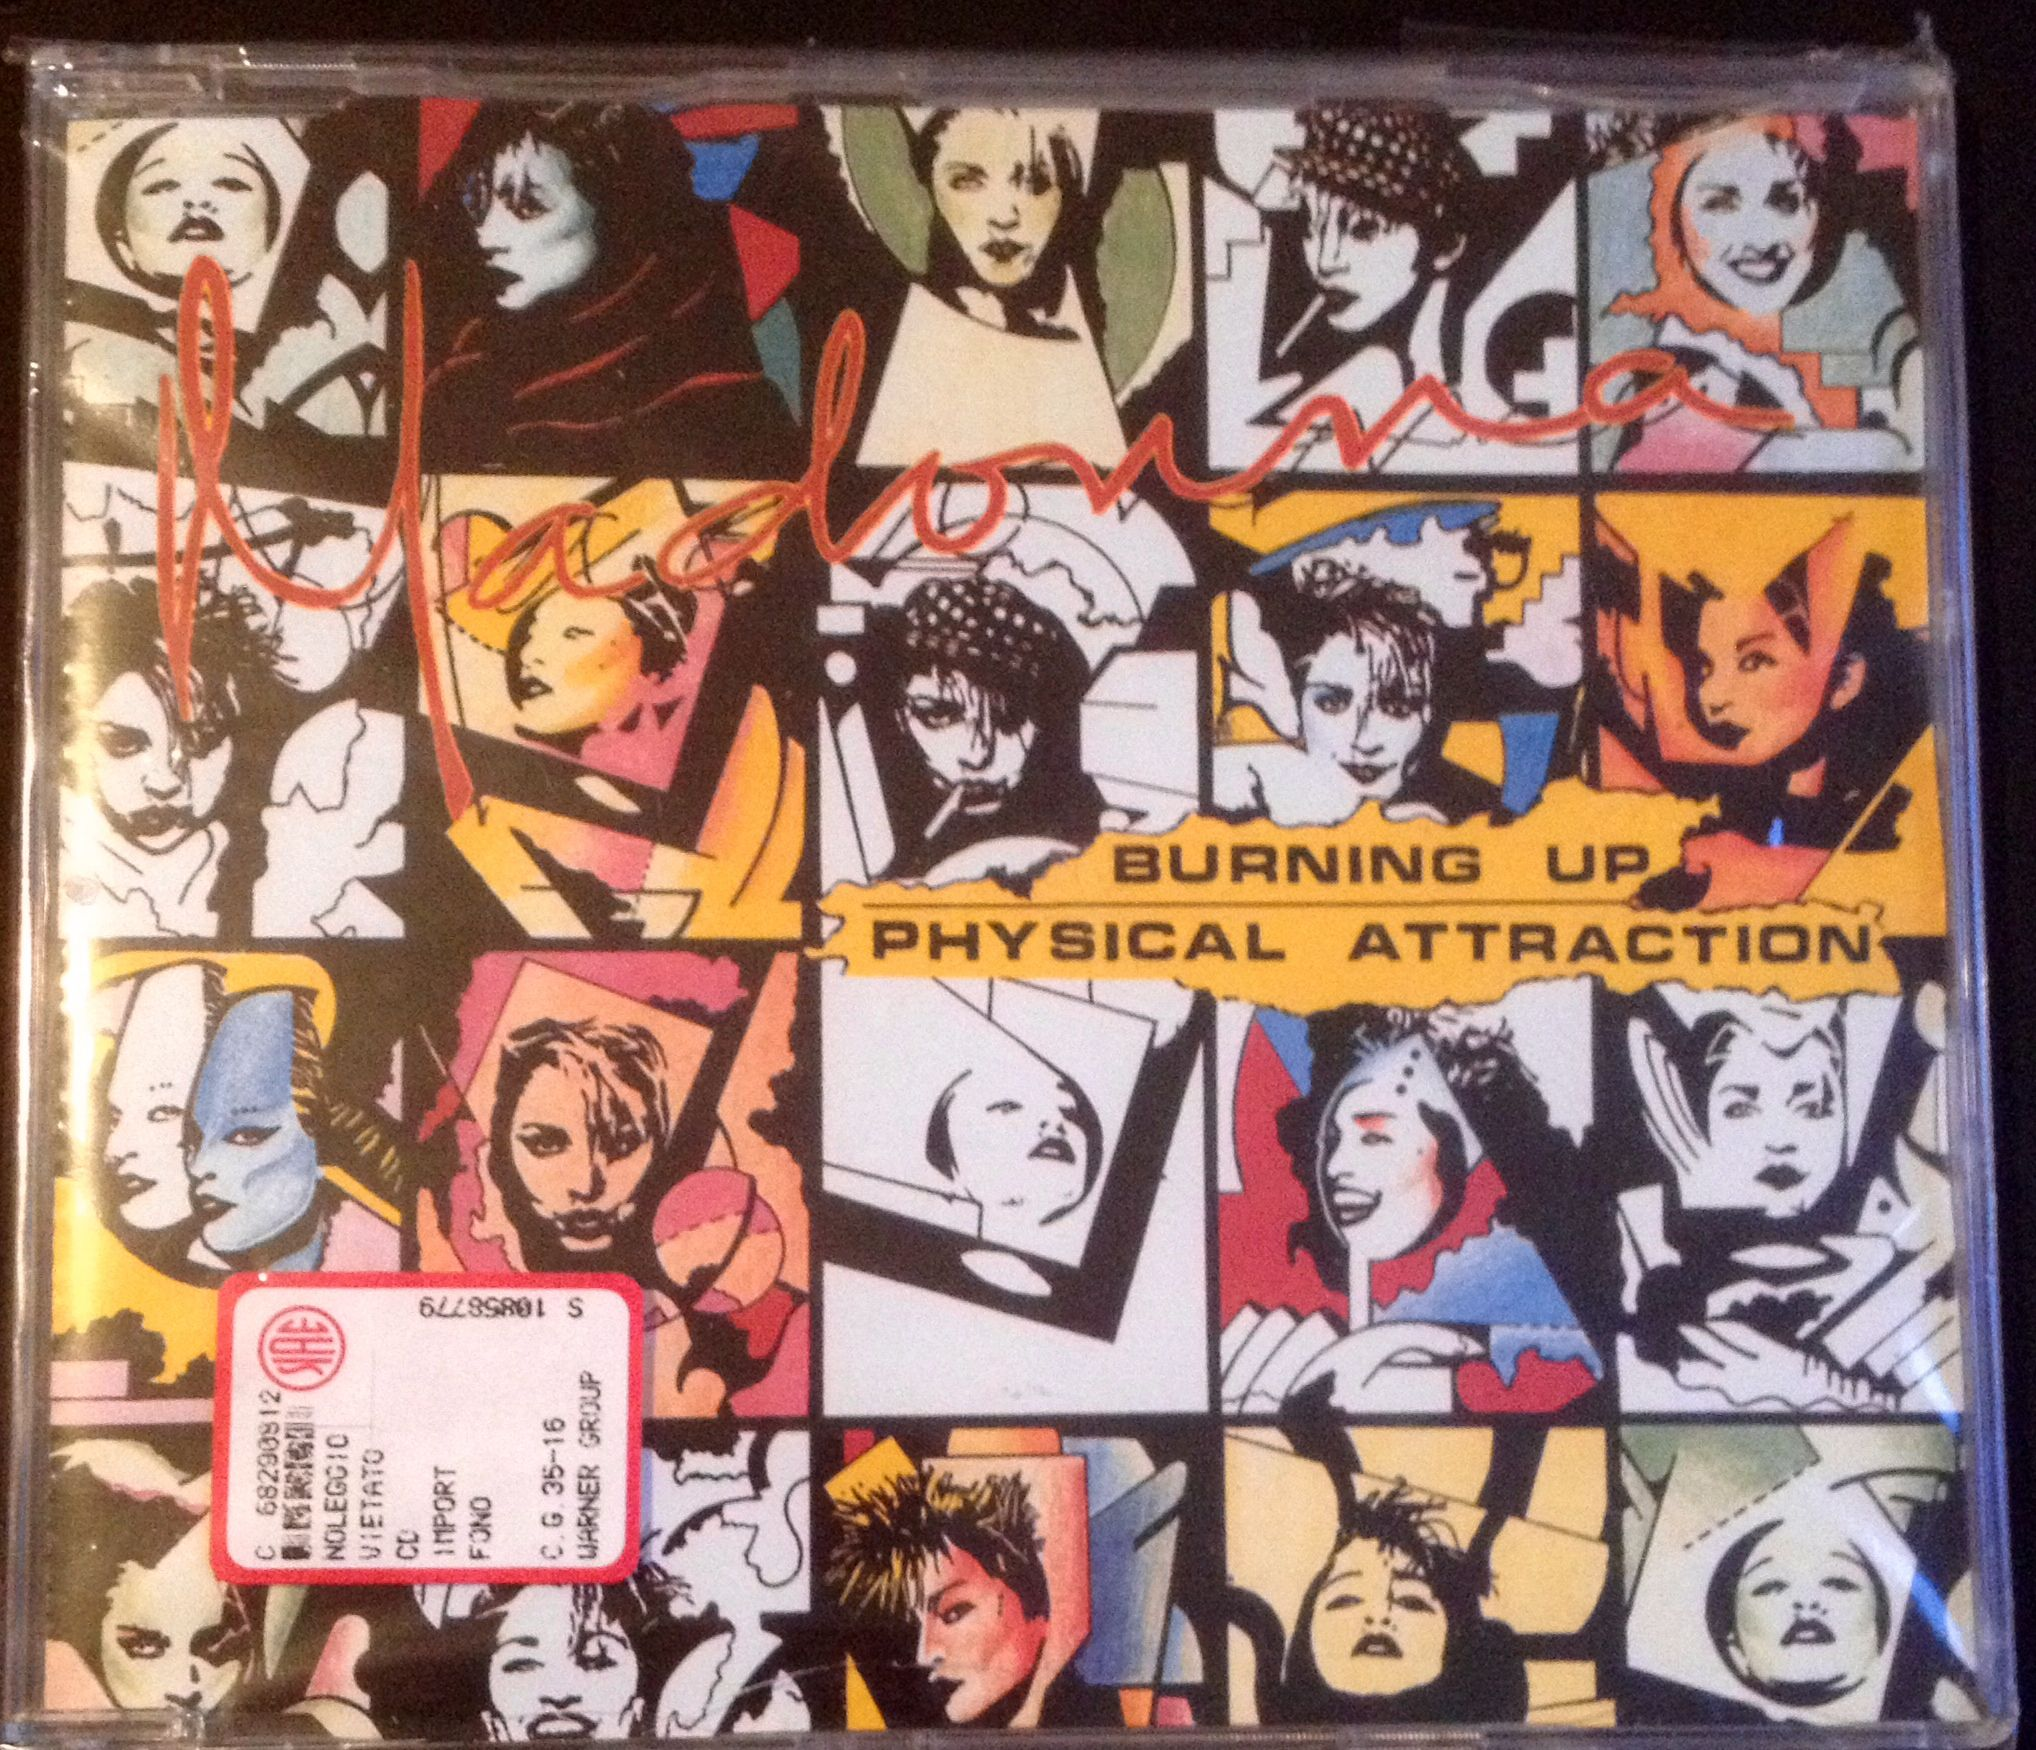 Madonna - Burning up / Physical Attraction (Cd single - Yellow series) Front #Madonna